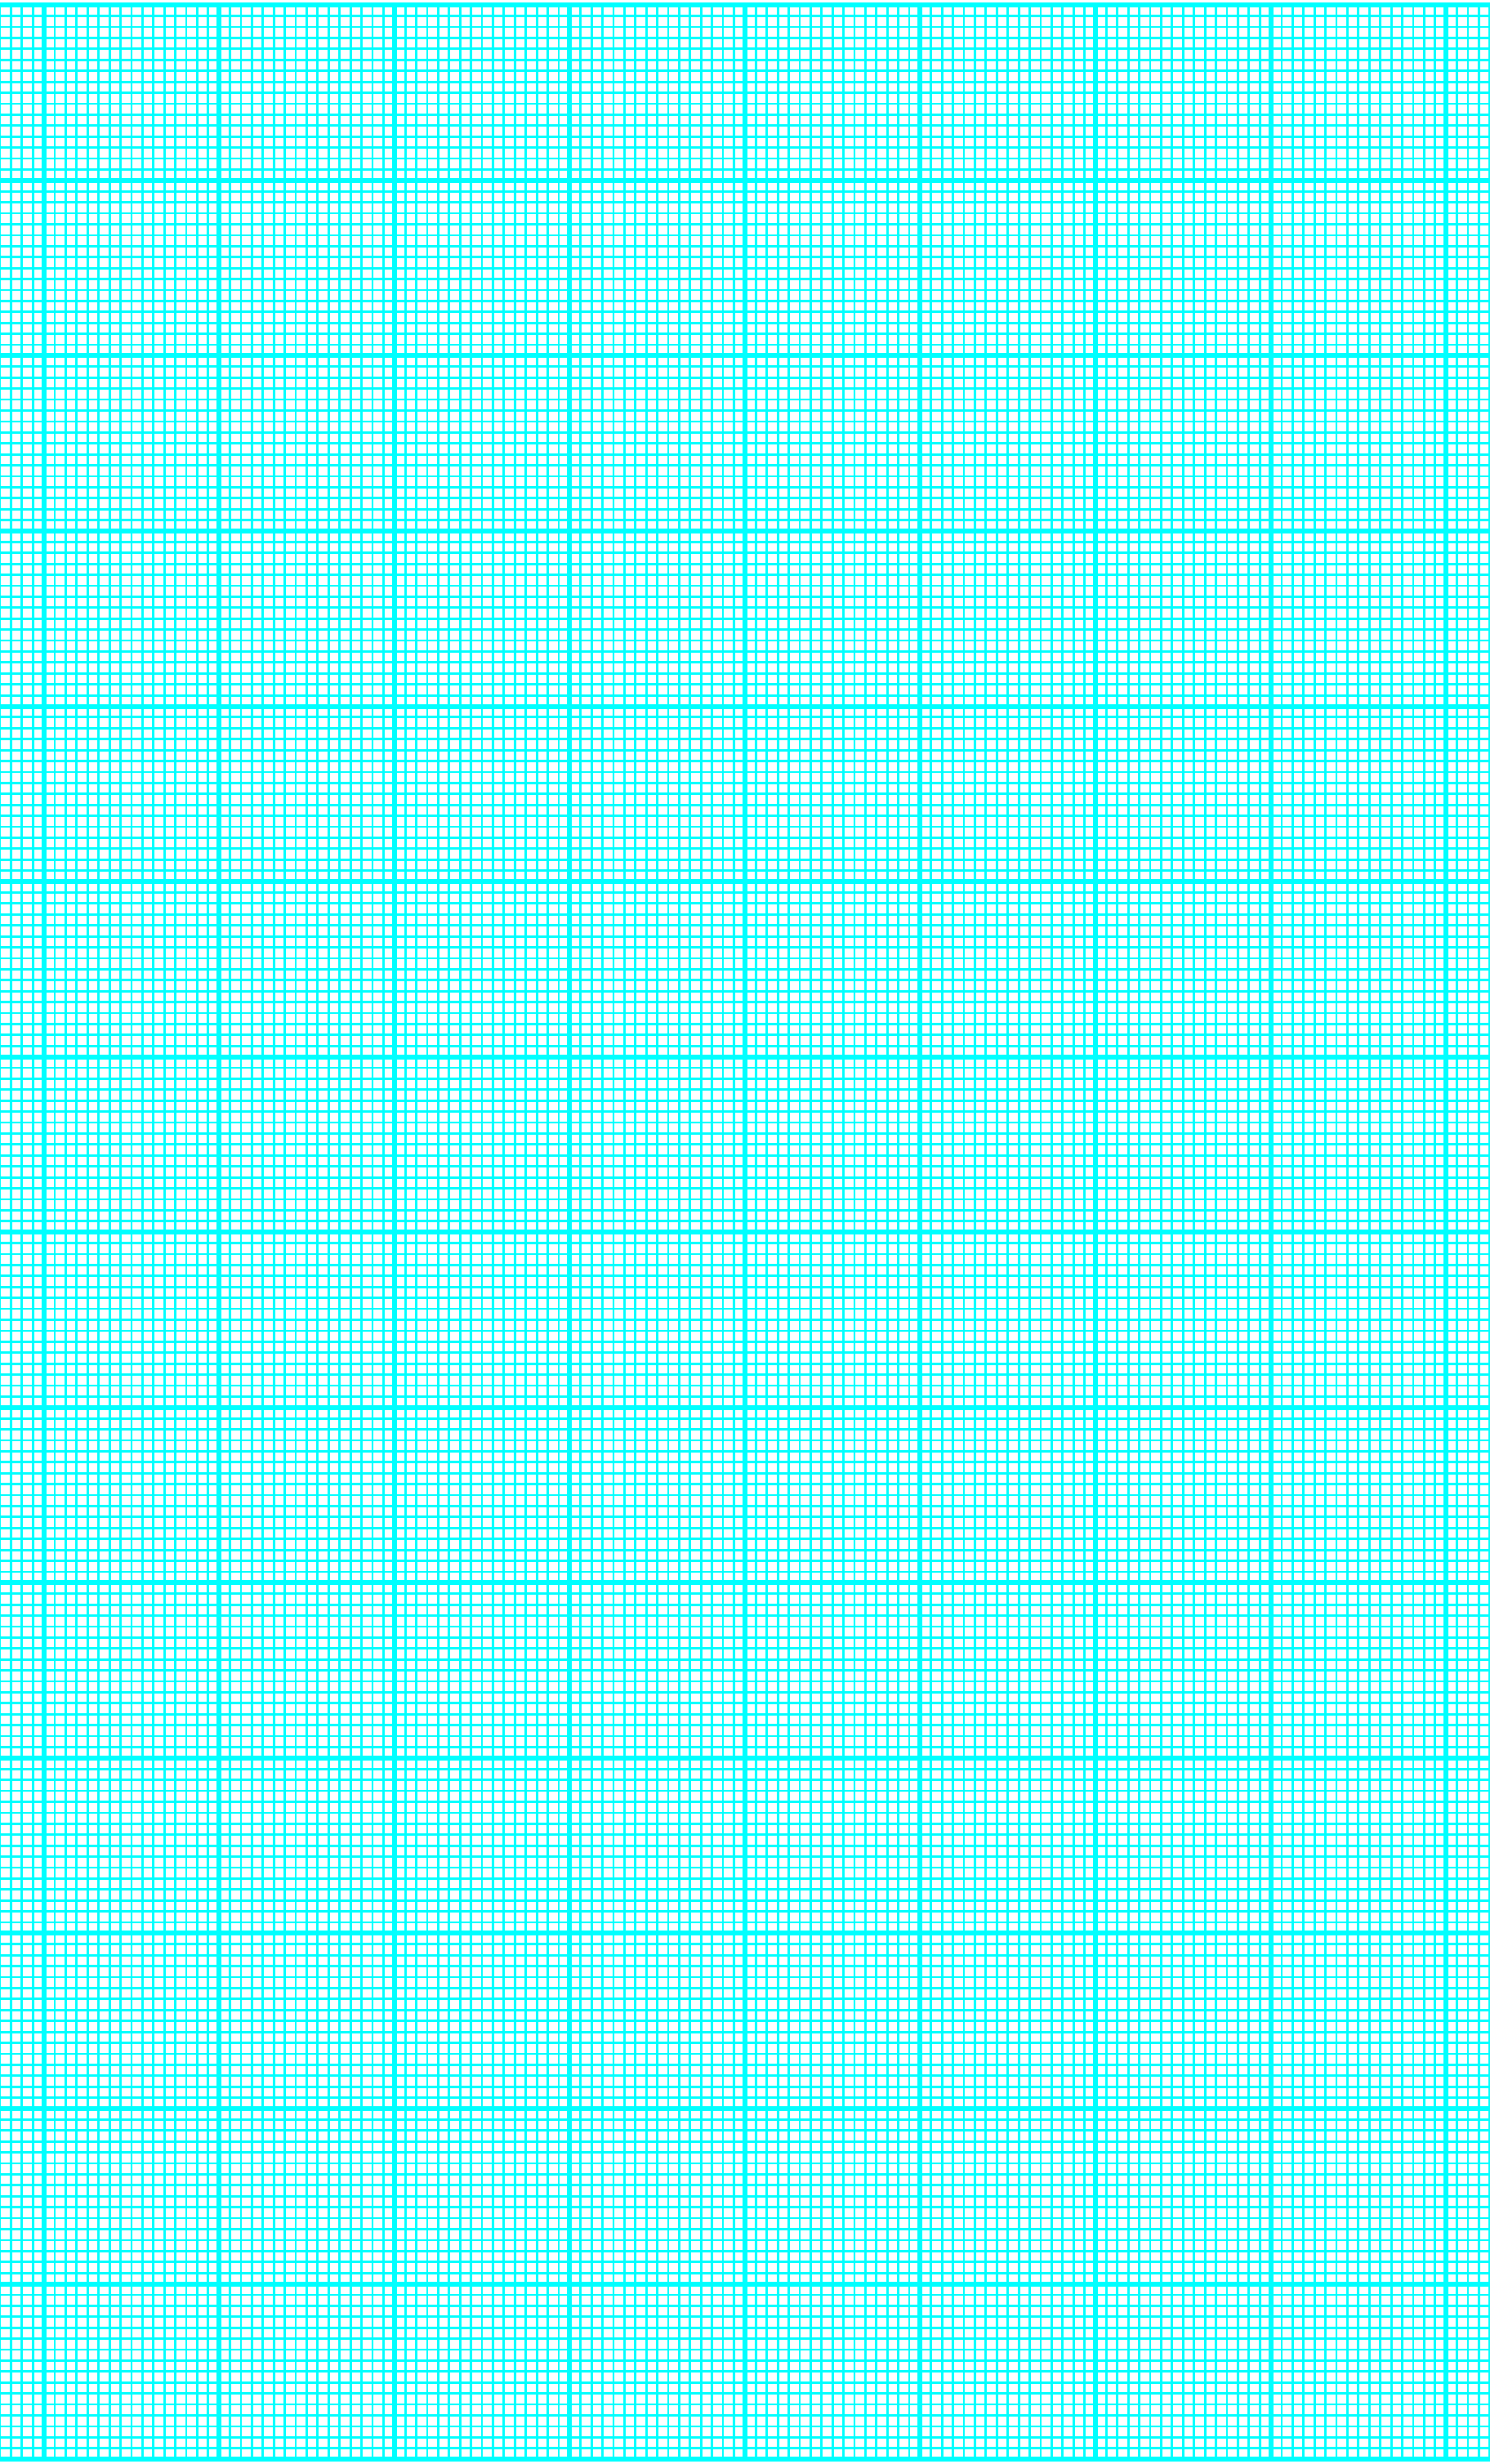 16 lines per inch graph paper on legal sized paper heavy free download